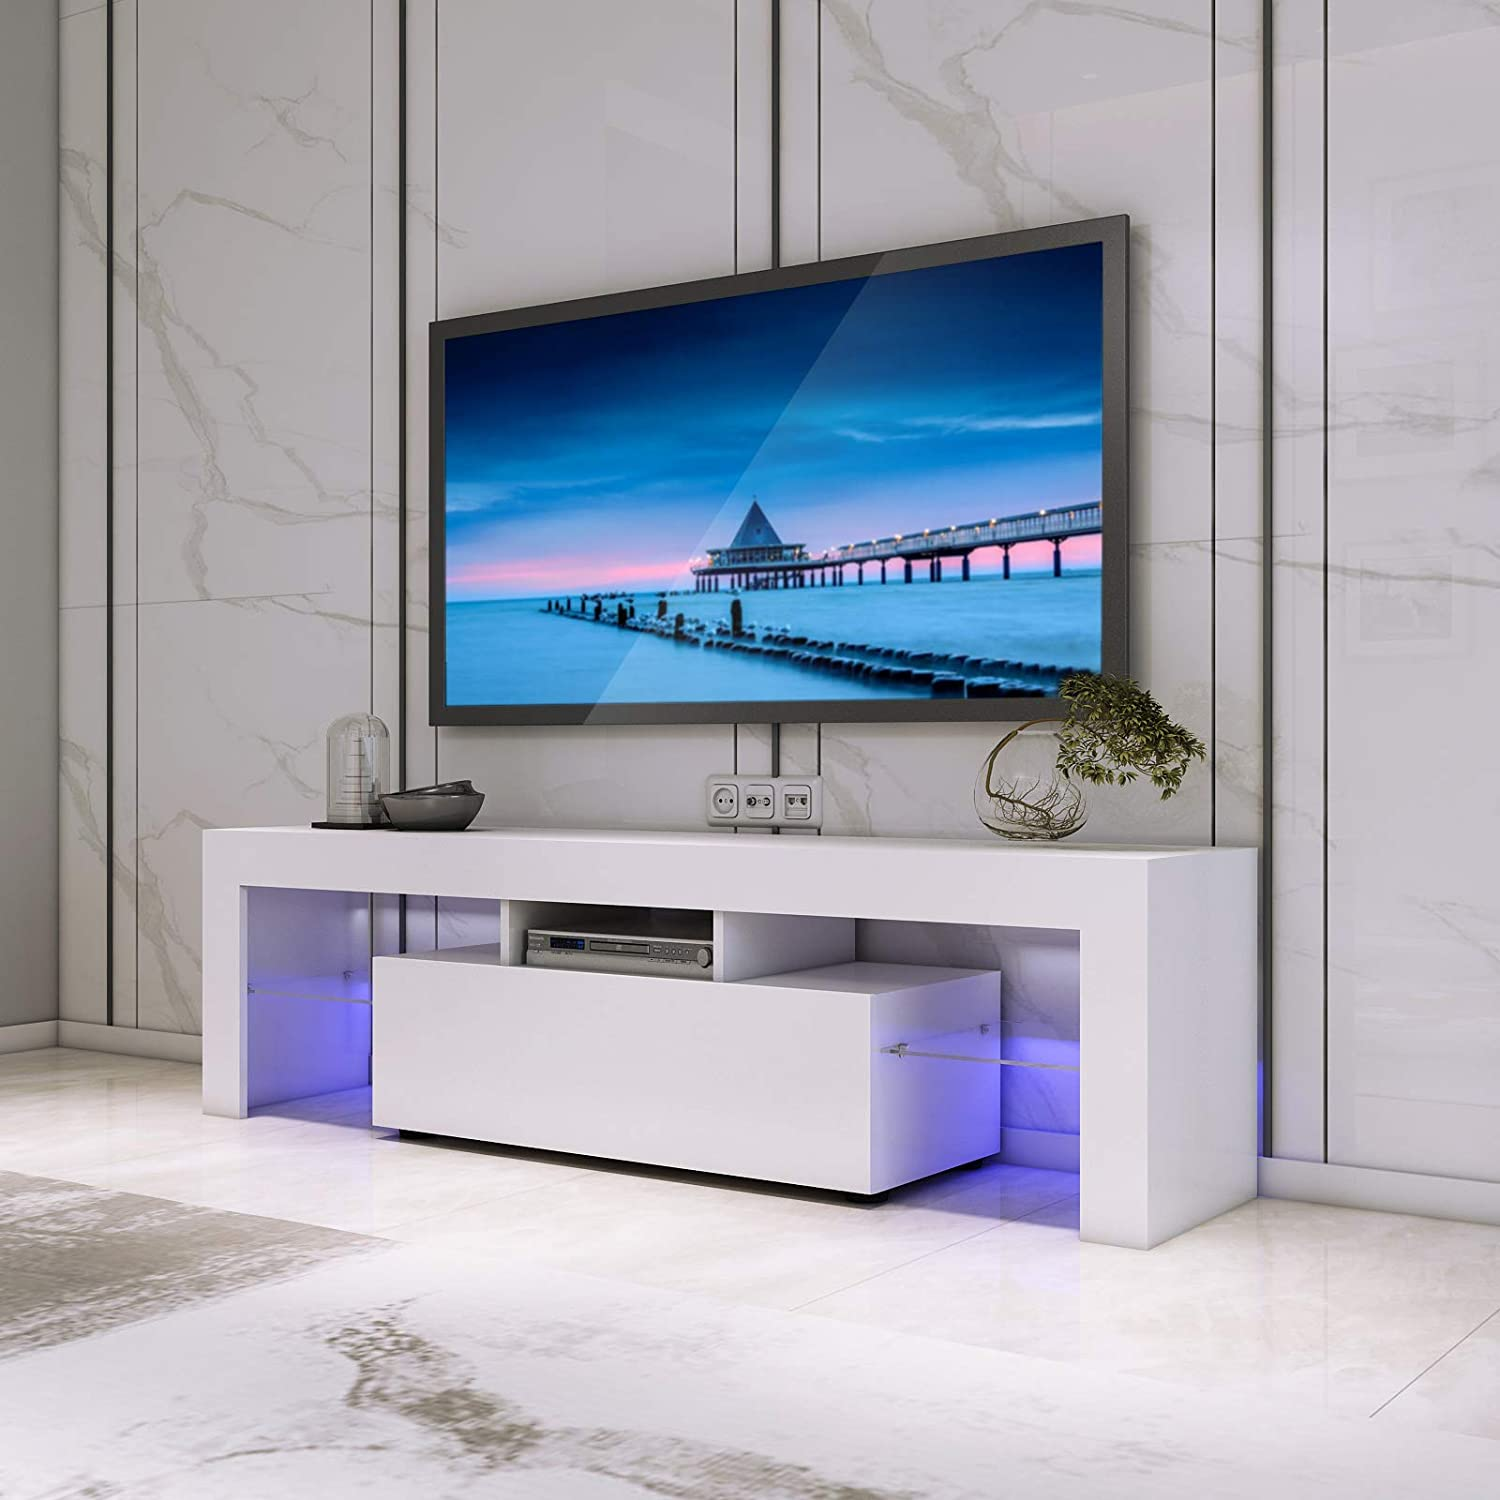 Led Tv Stand Cabinet Unit Modern Tv Desk With Storage Amazon Co Uk Electronics